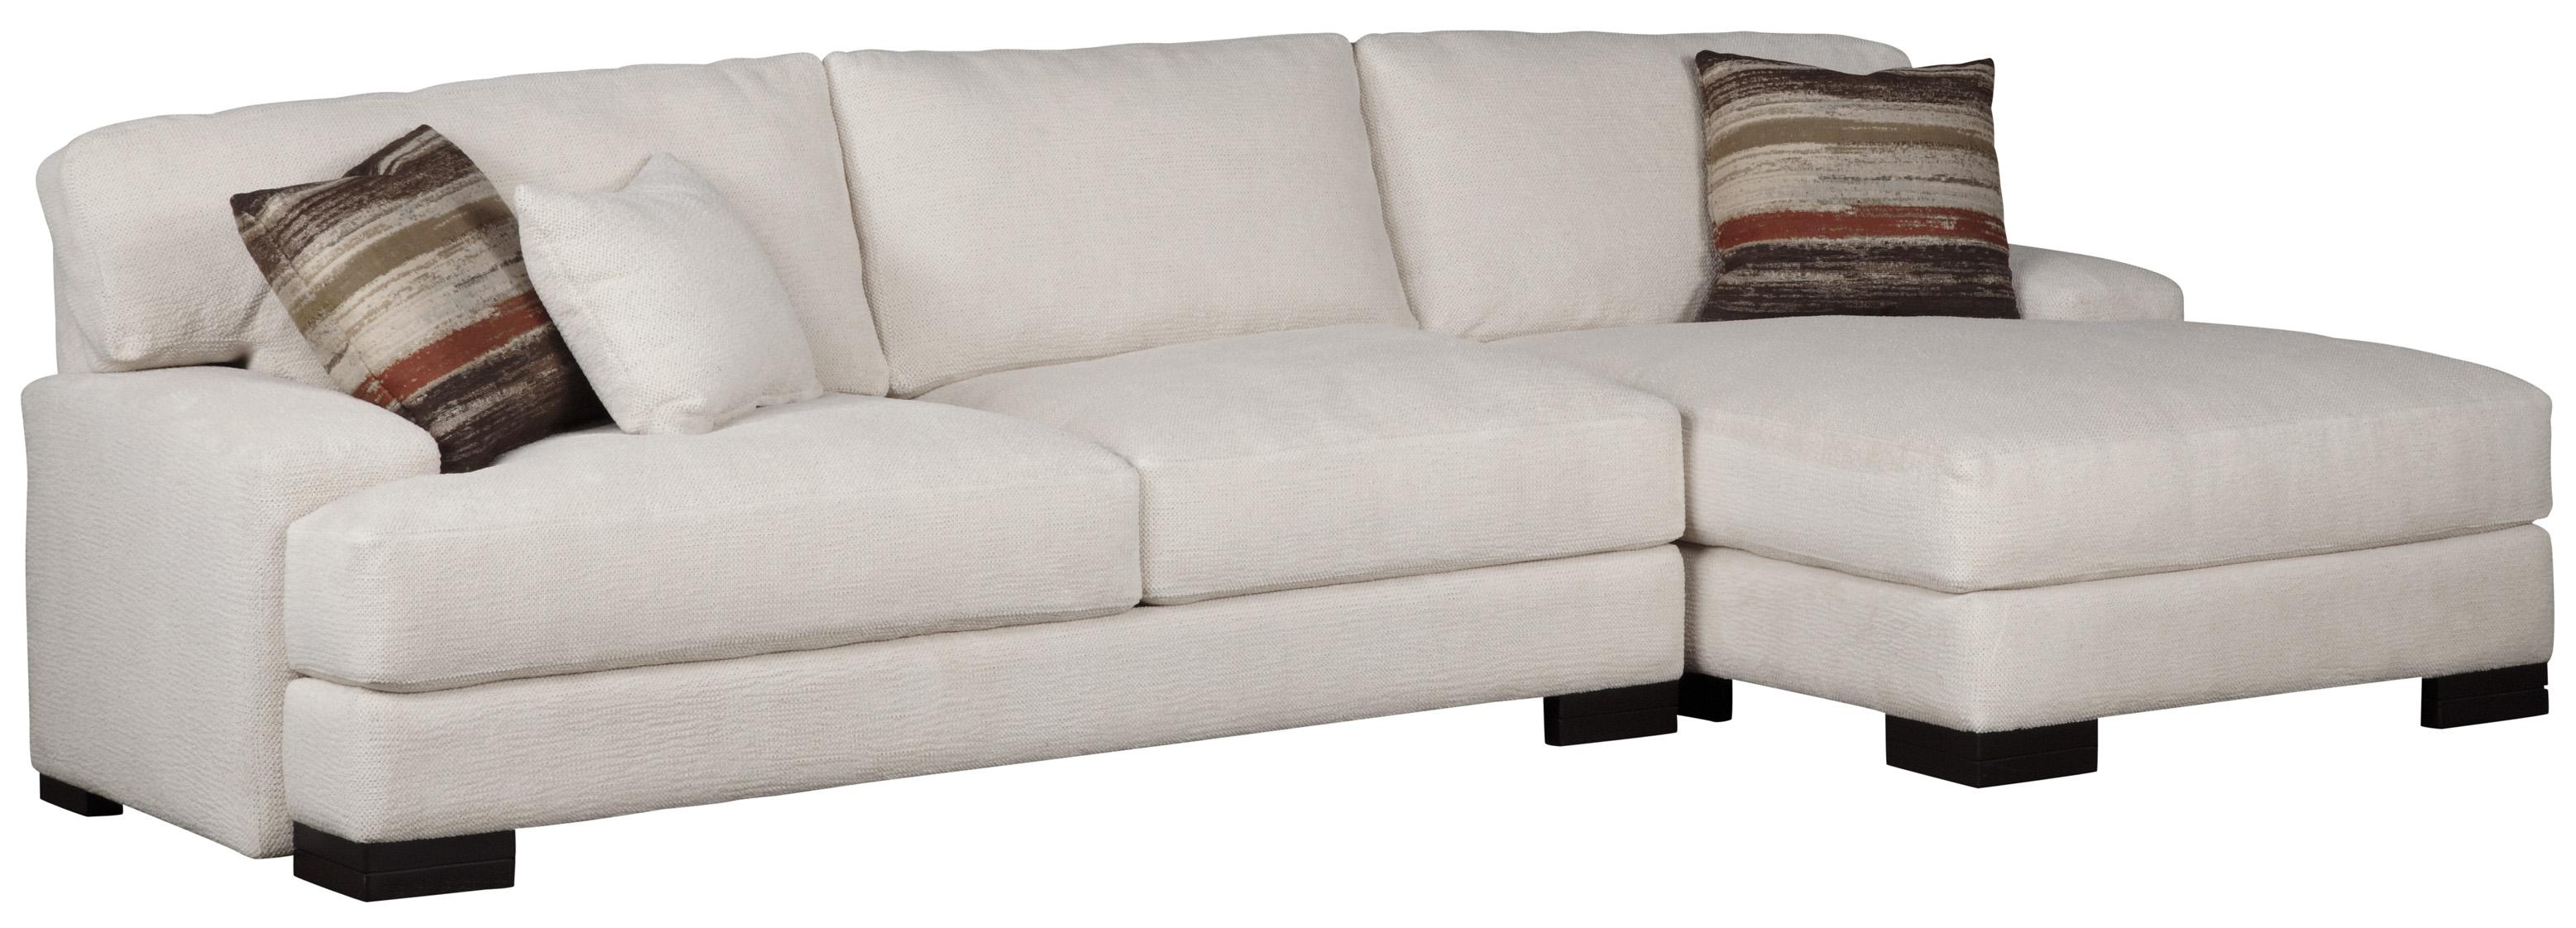 Burton  Sectional with Chaise by Jonathan Louis at Fashion Furniture